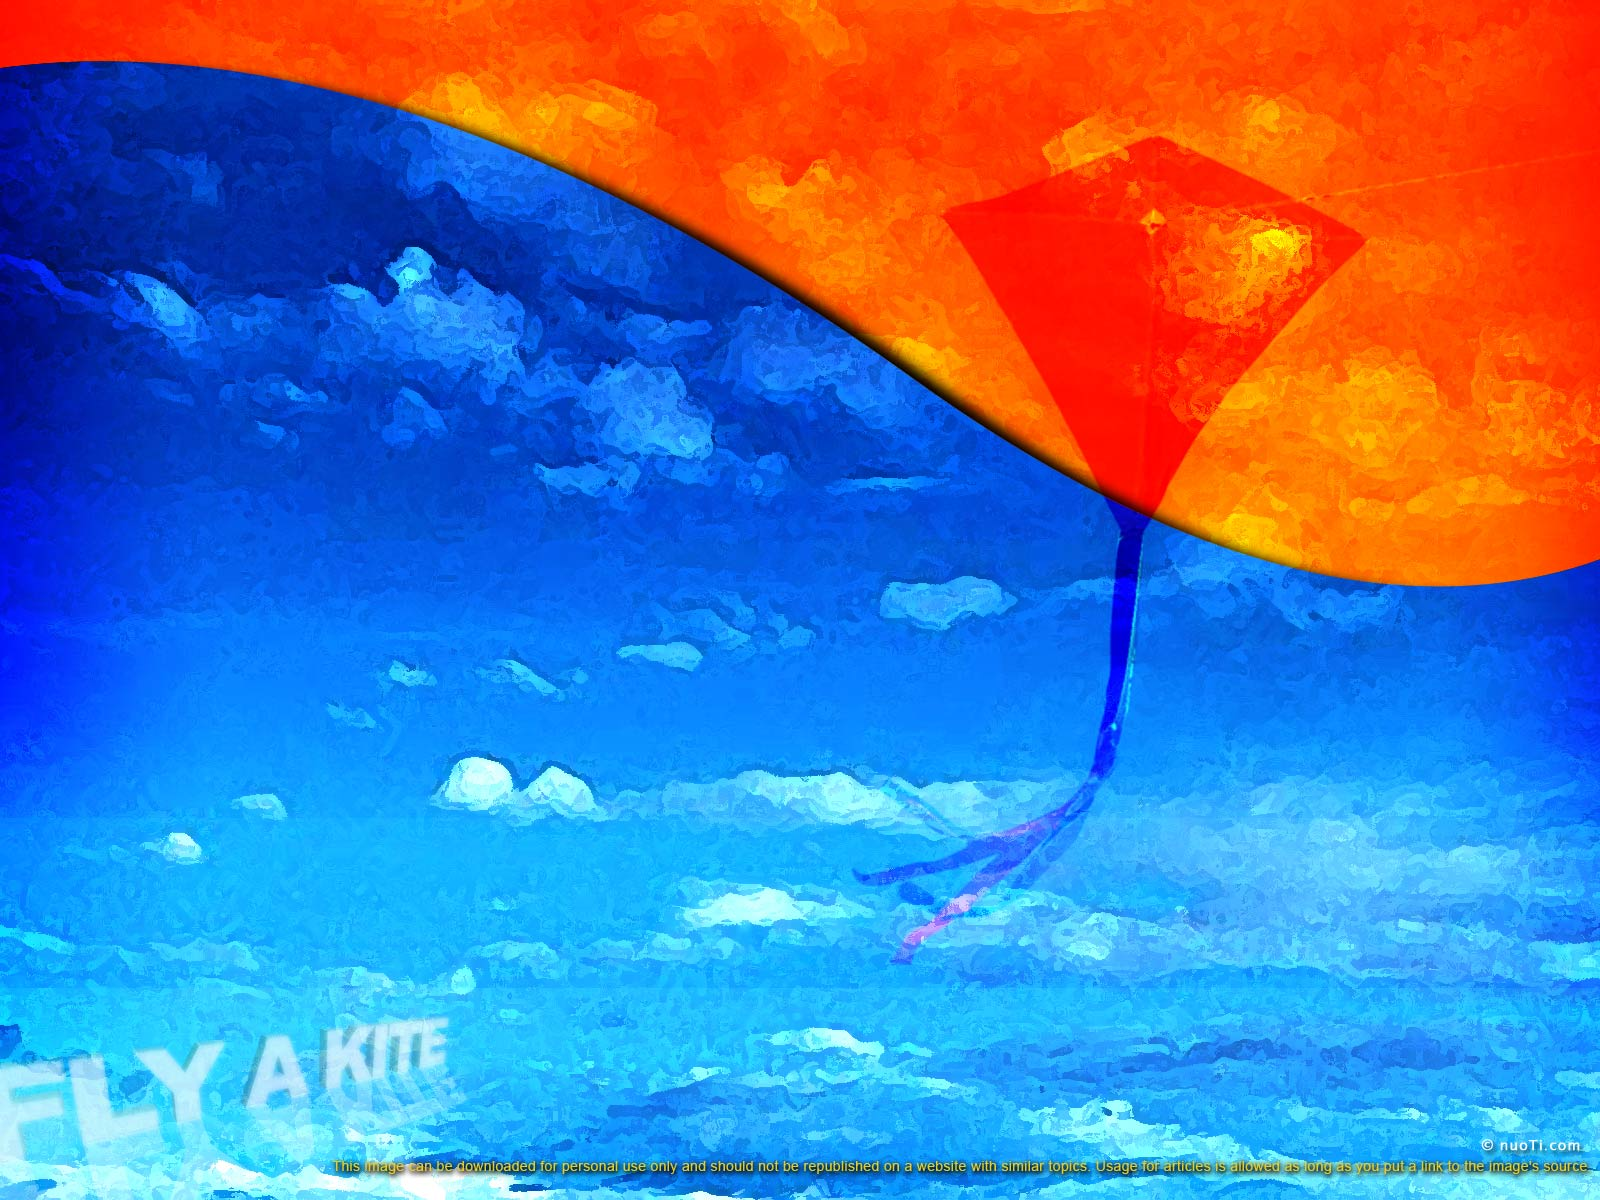 Kite Background background with fly a kite